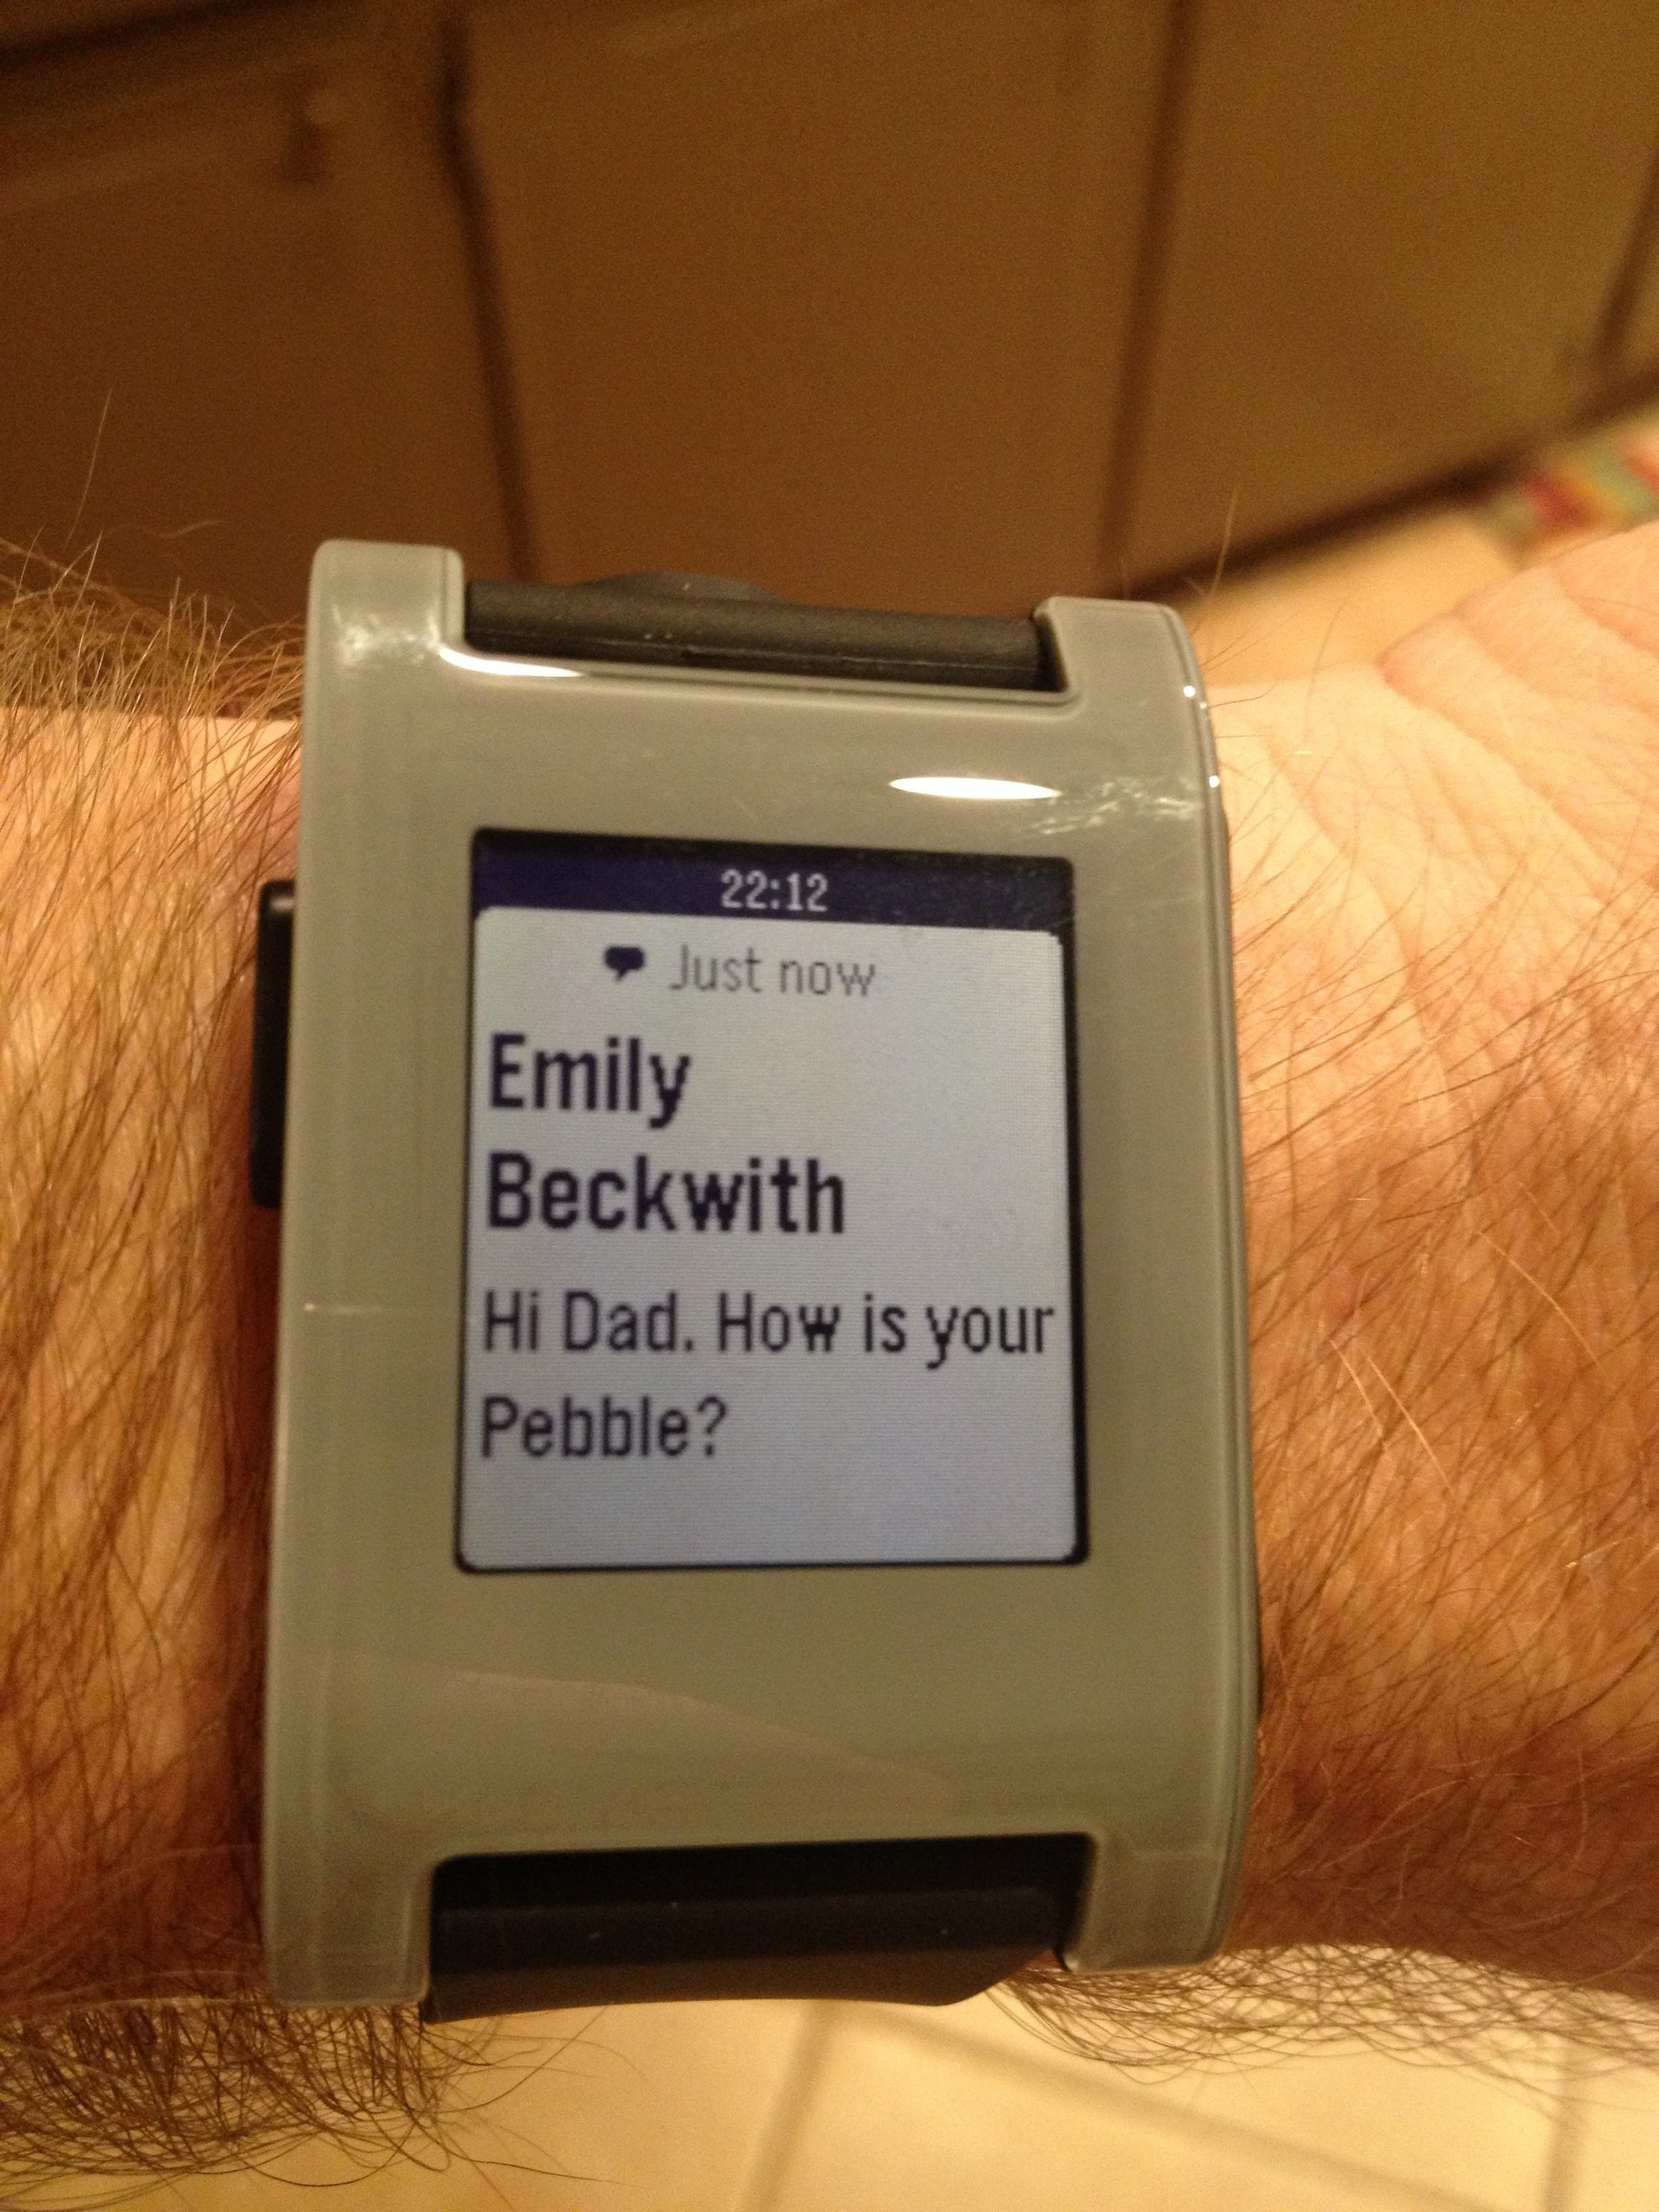 pebble-text-notification-e1376284566287.jpg